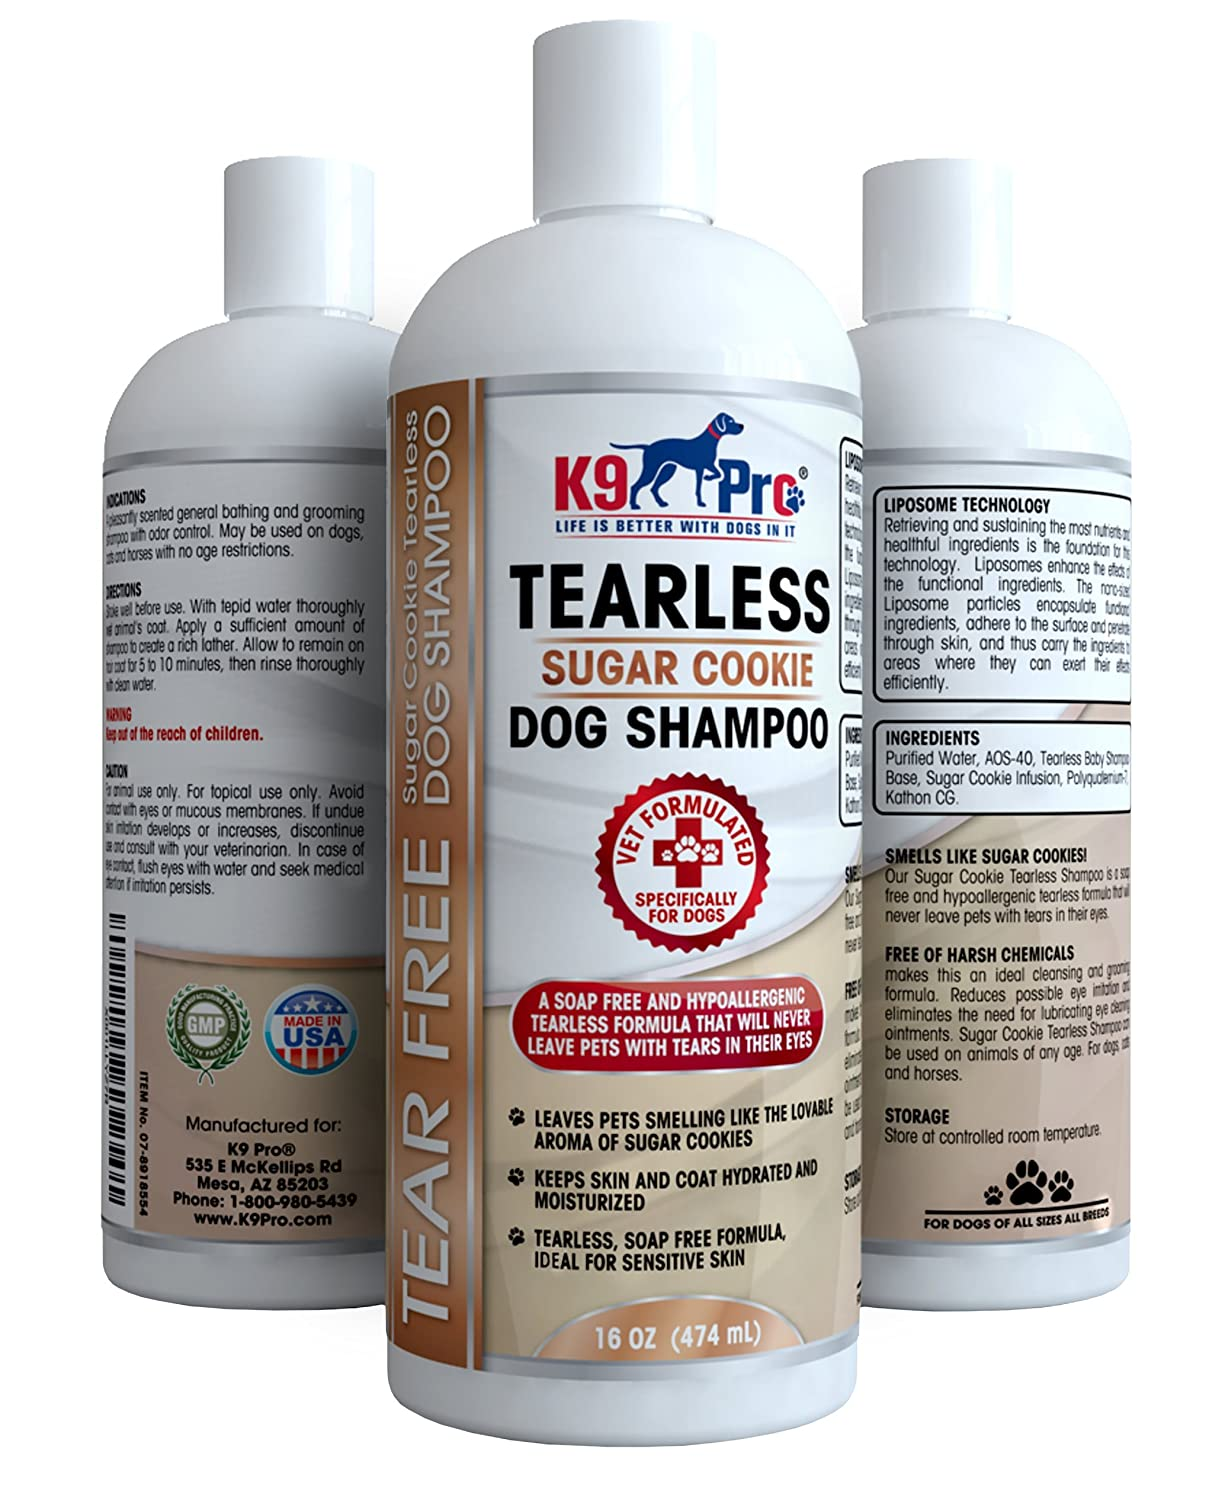 Tear Free Dog Shampoo - Best Hypoallergenic Tearless Anti Itch Vet Formula For Dogs With Allergies And Dry Itchy Sensitive Skin - Soothing and Gentle on Your Puppies Eyes - Sugar Cookie Scent